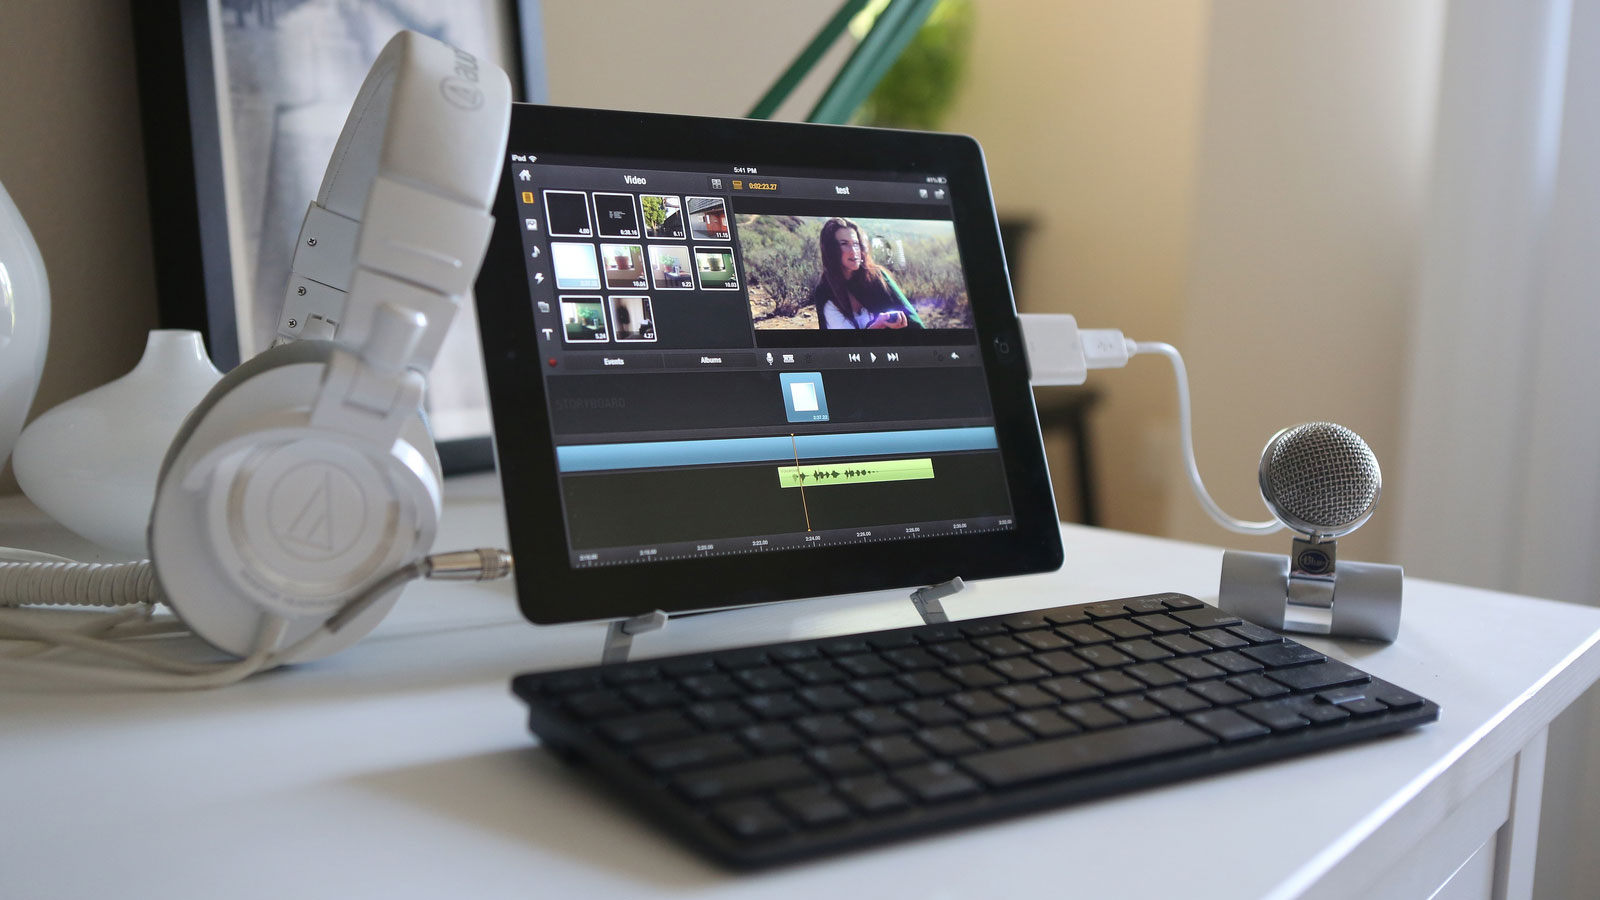 Click here to read The iPad Video Editing Workstation